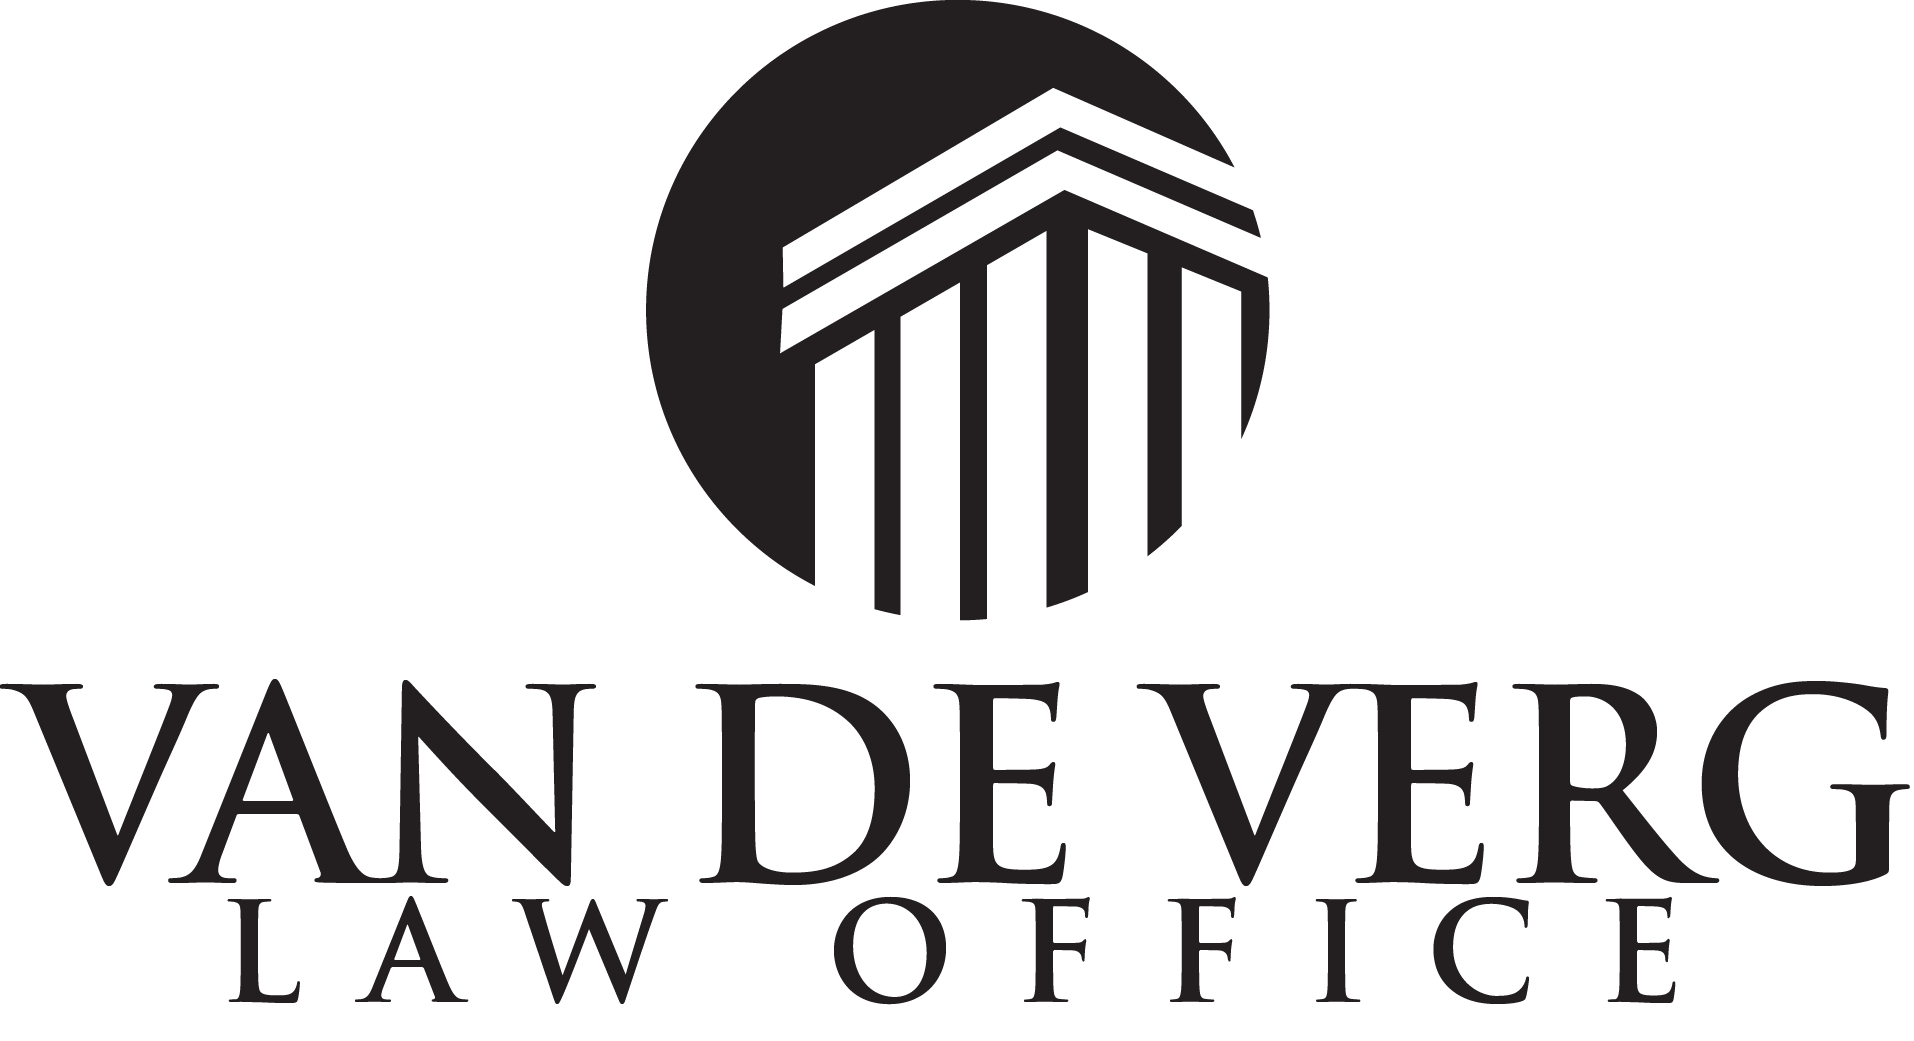 Van de Verg Law Office